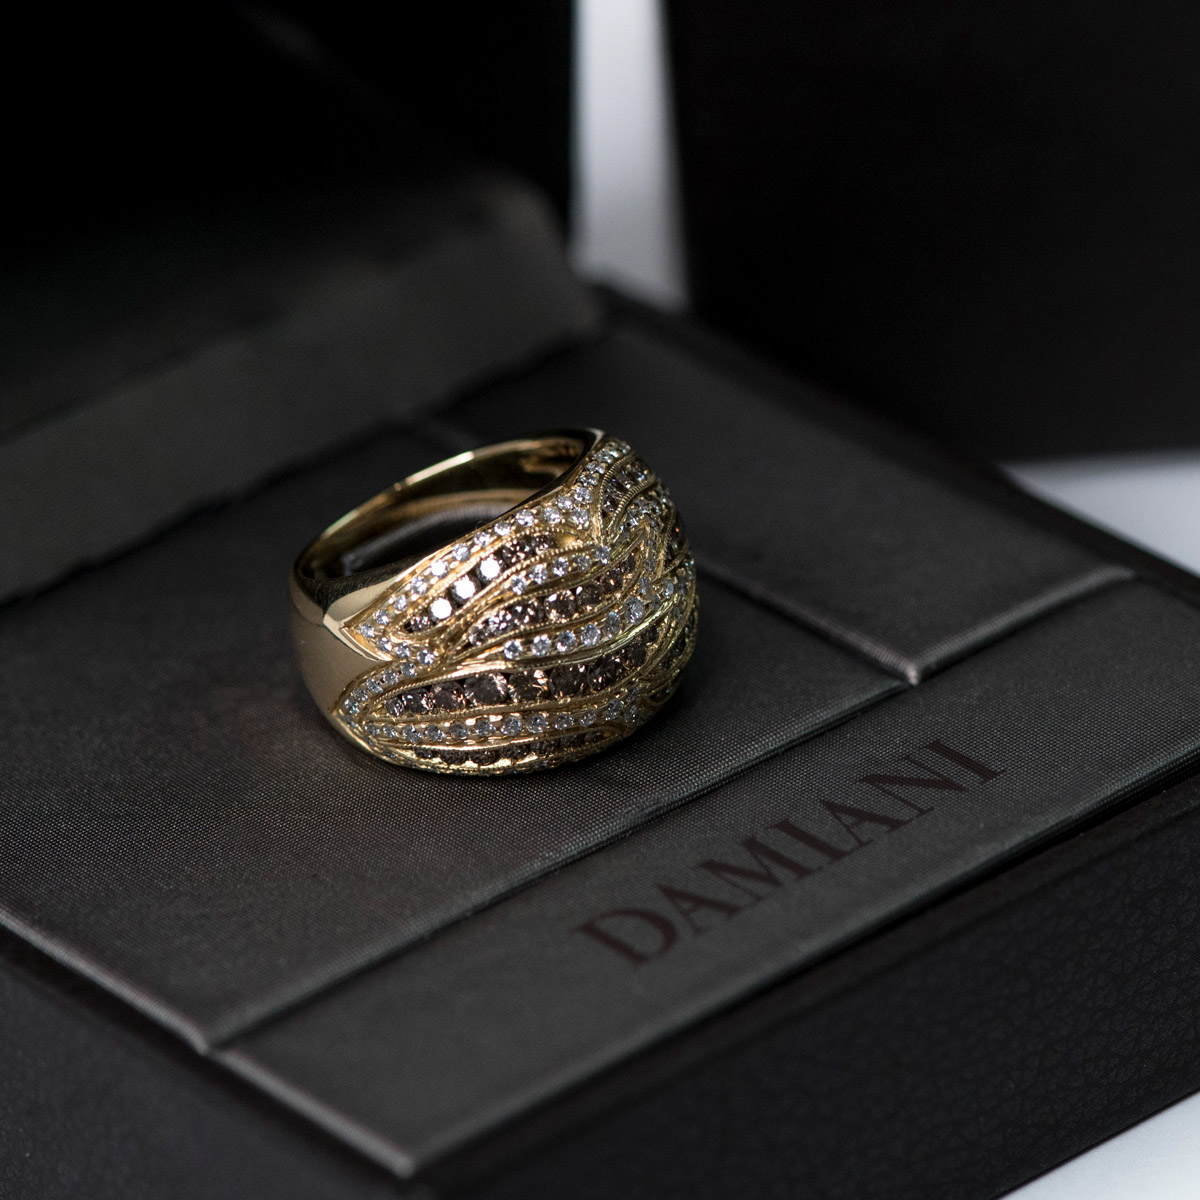 Damiani Anell Or Groc